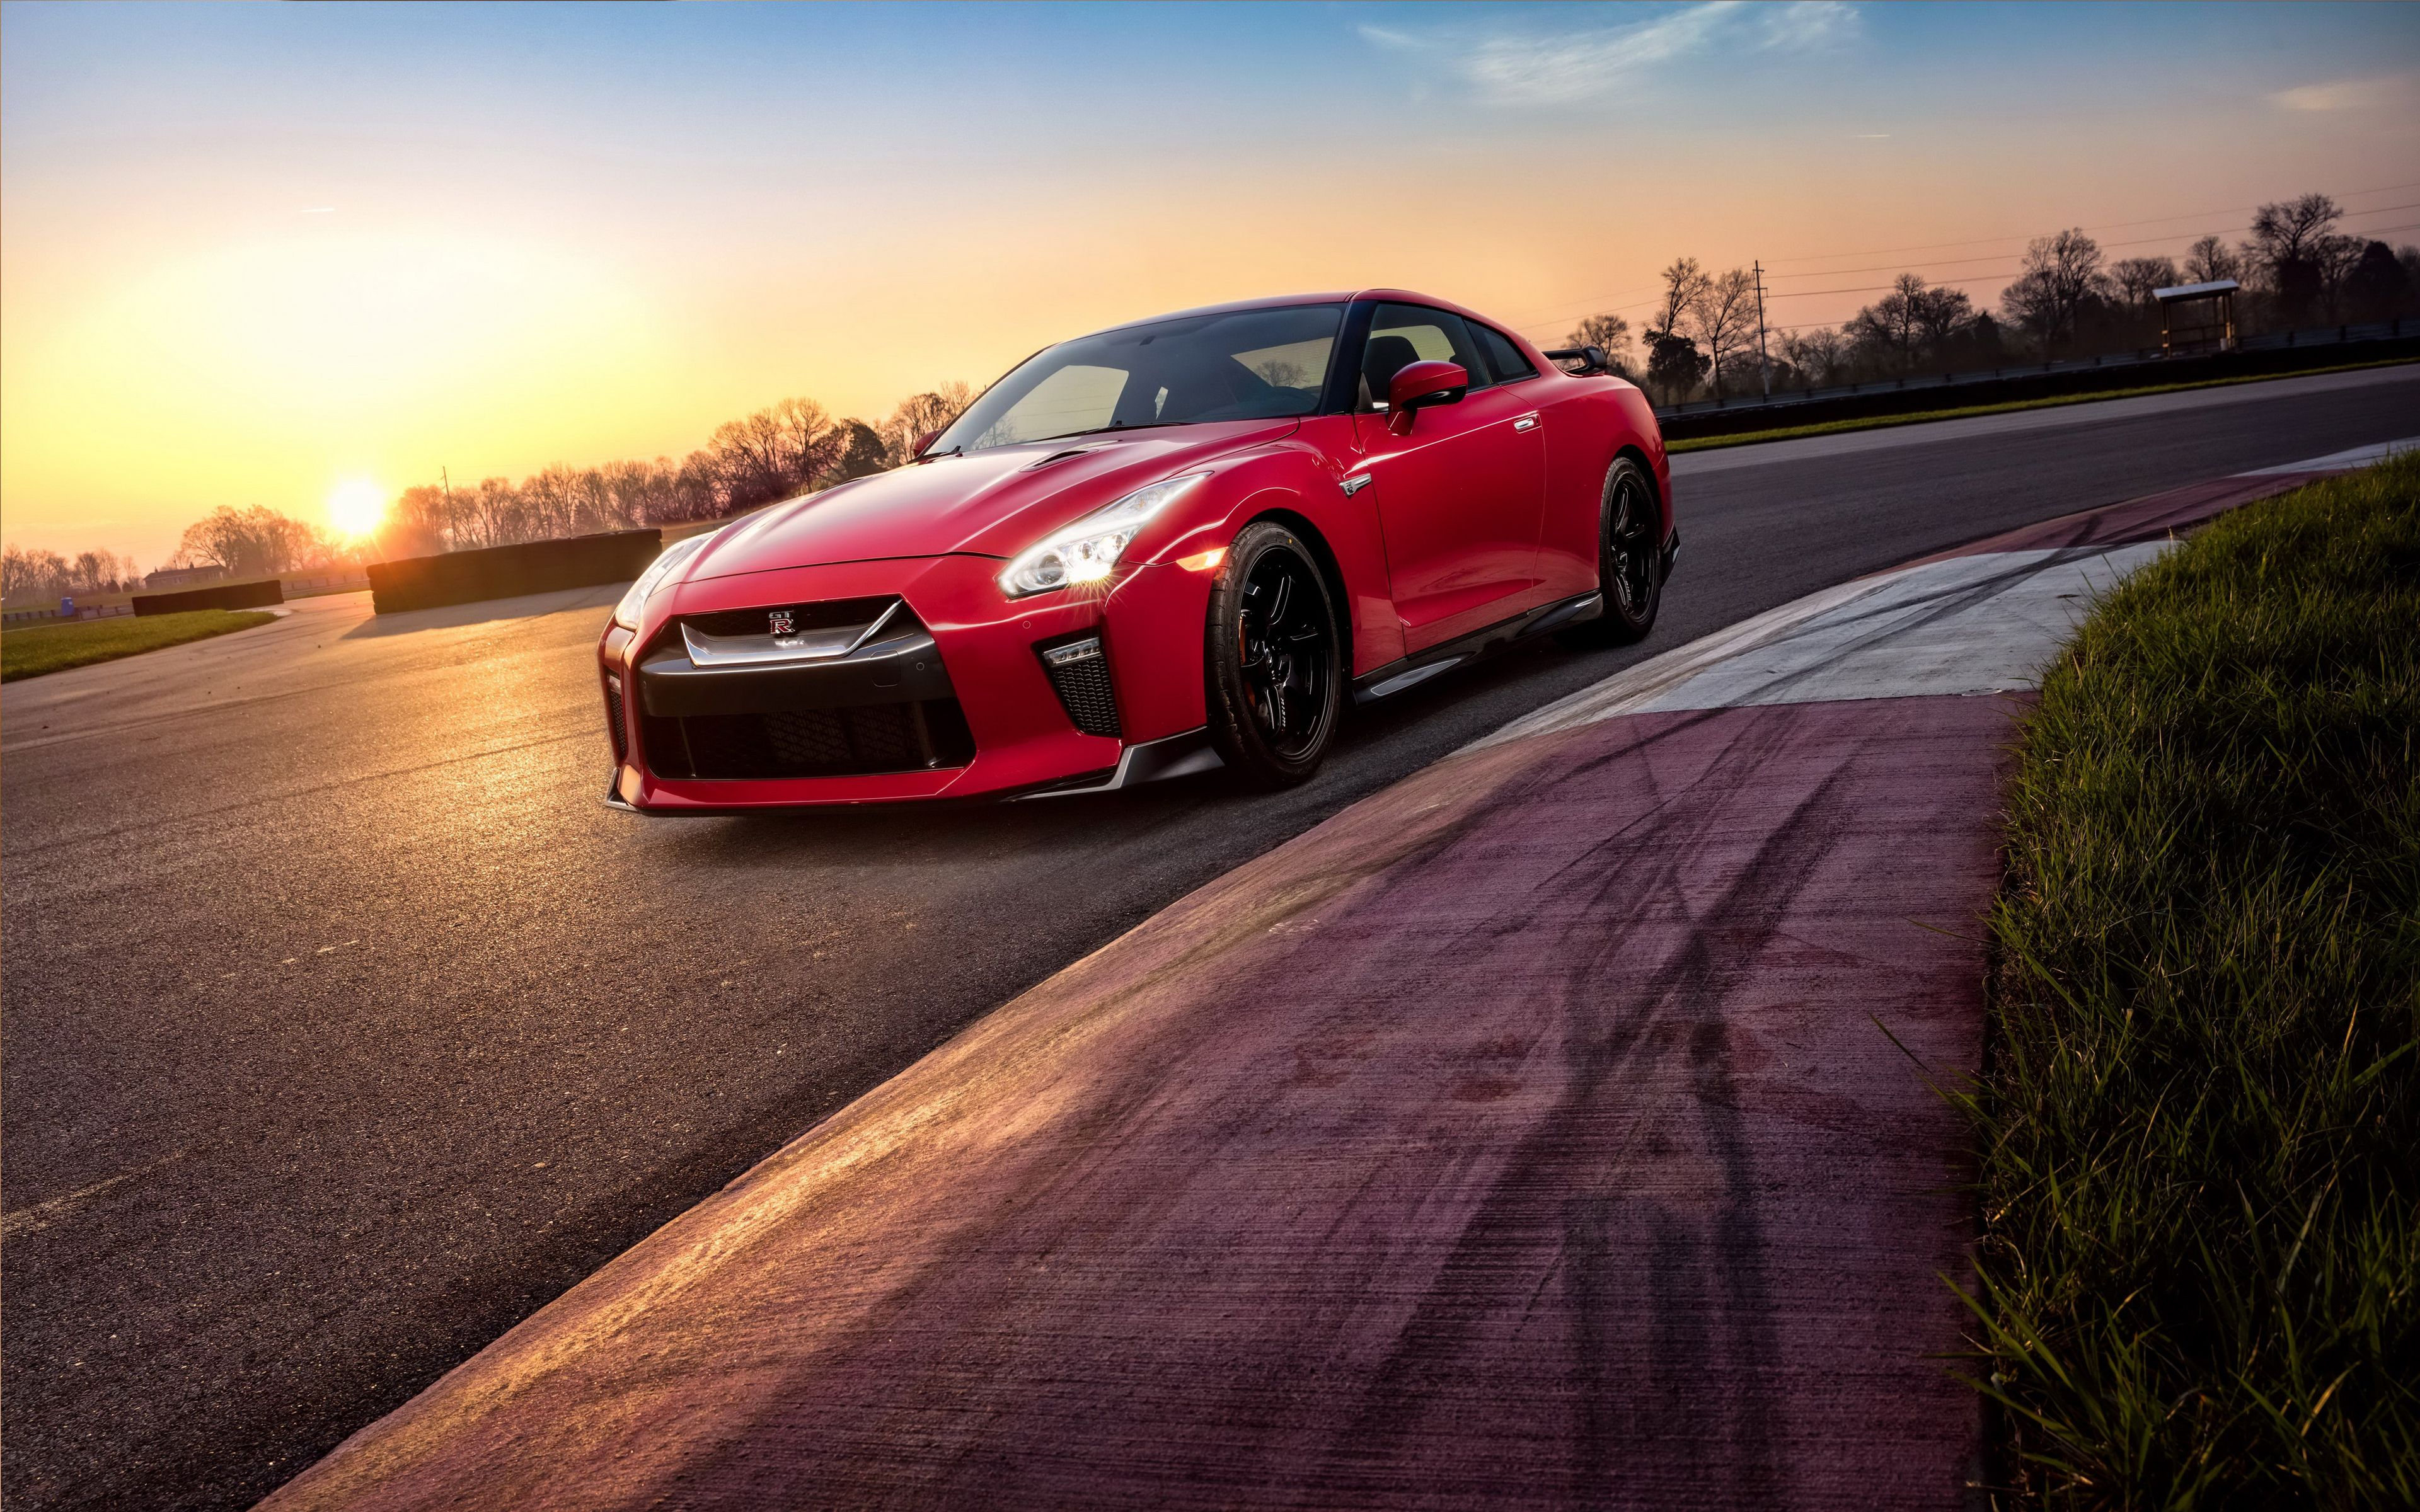 Nissan GT-R Wallpapers - Top Free Nissan GT-R Backgrounds ...